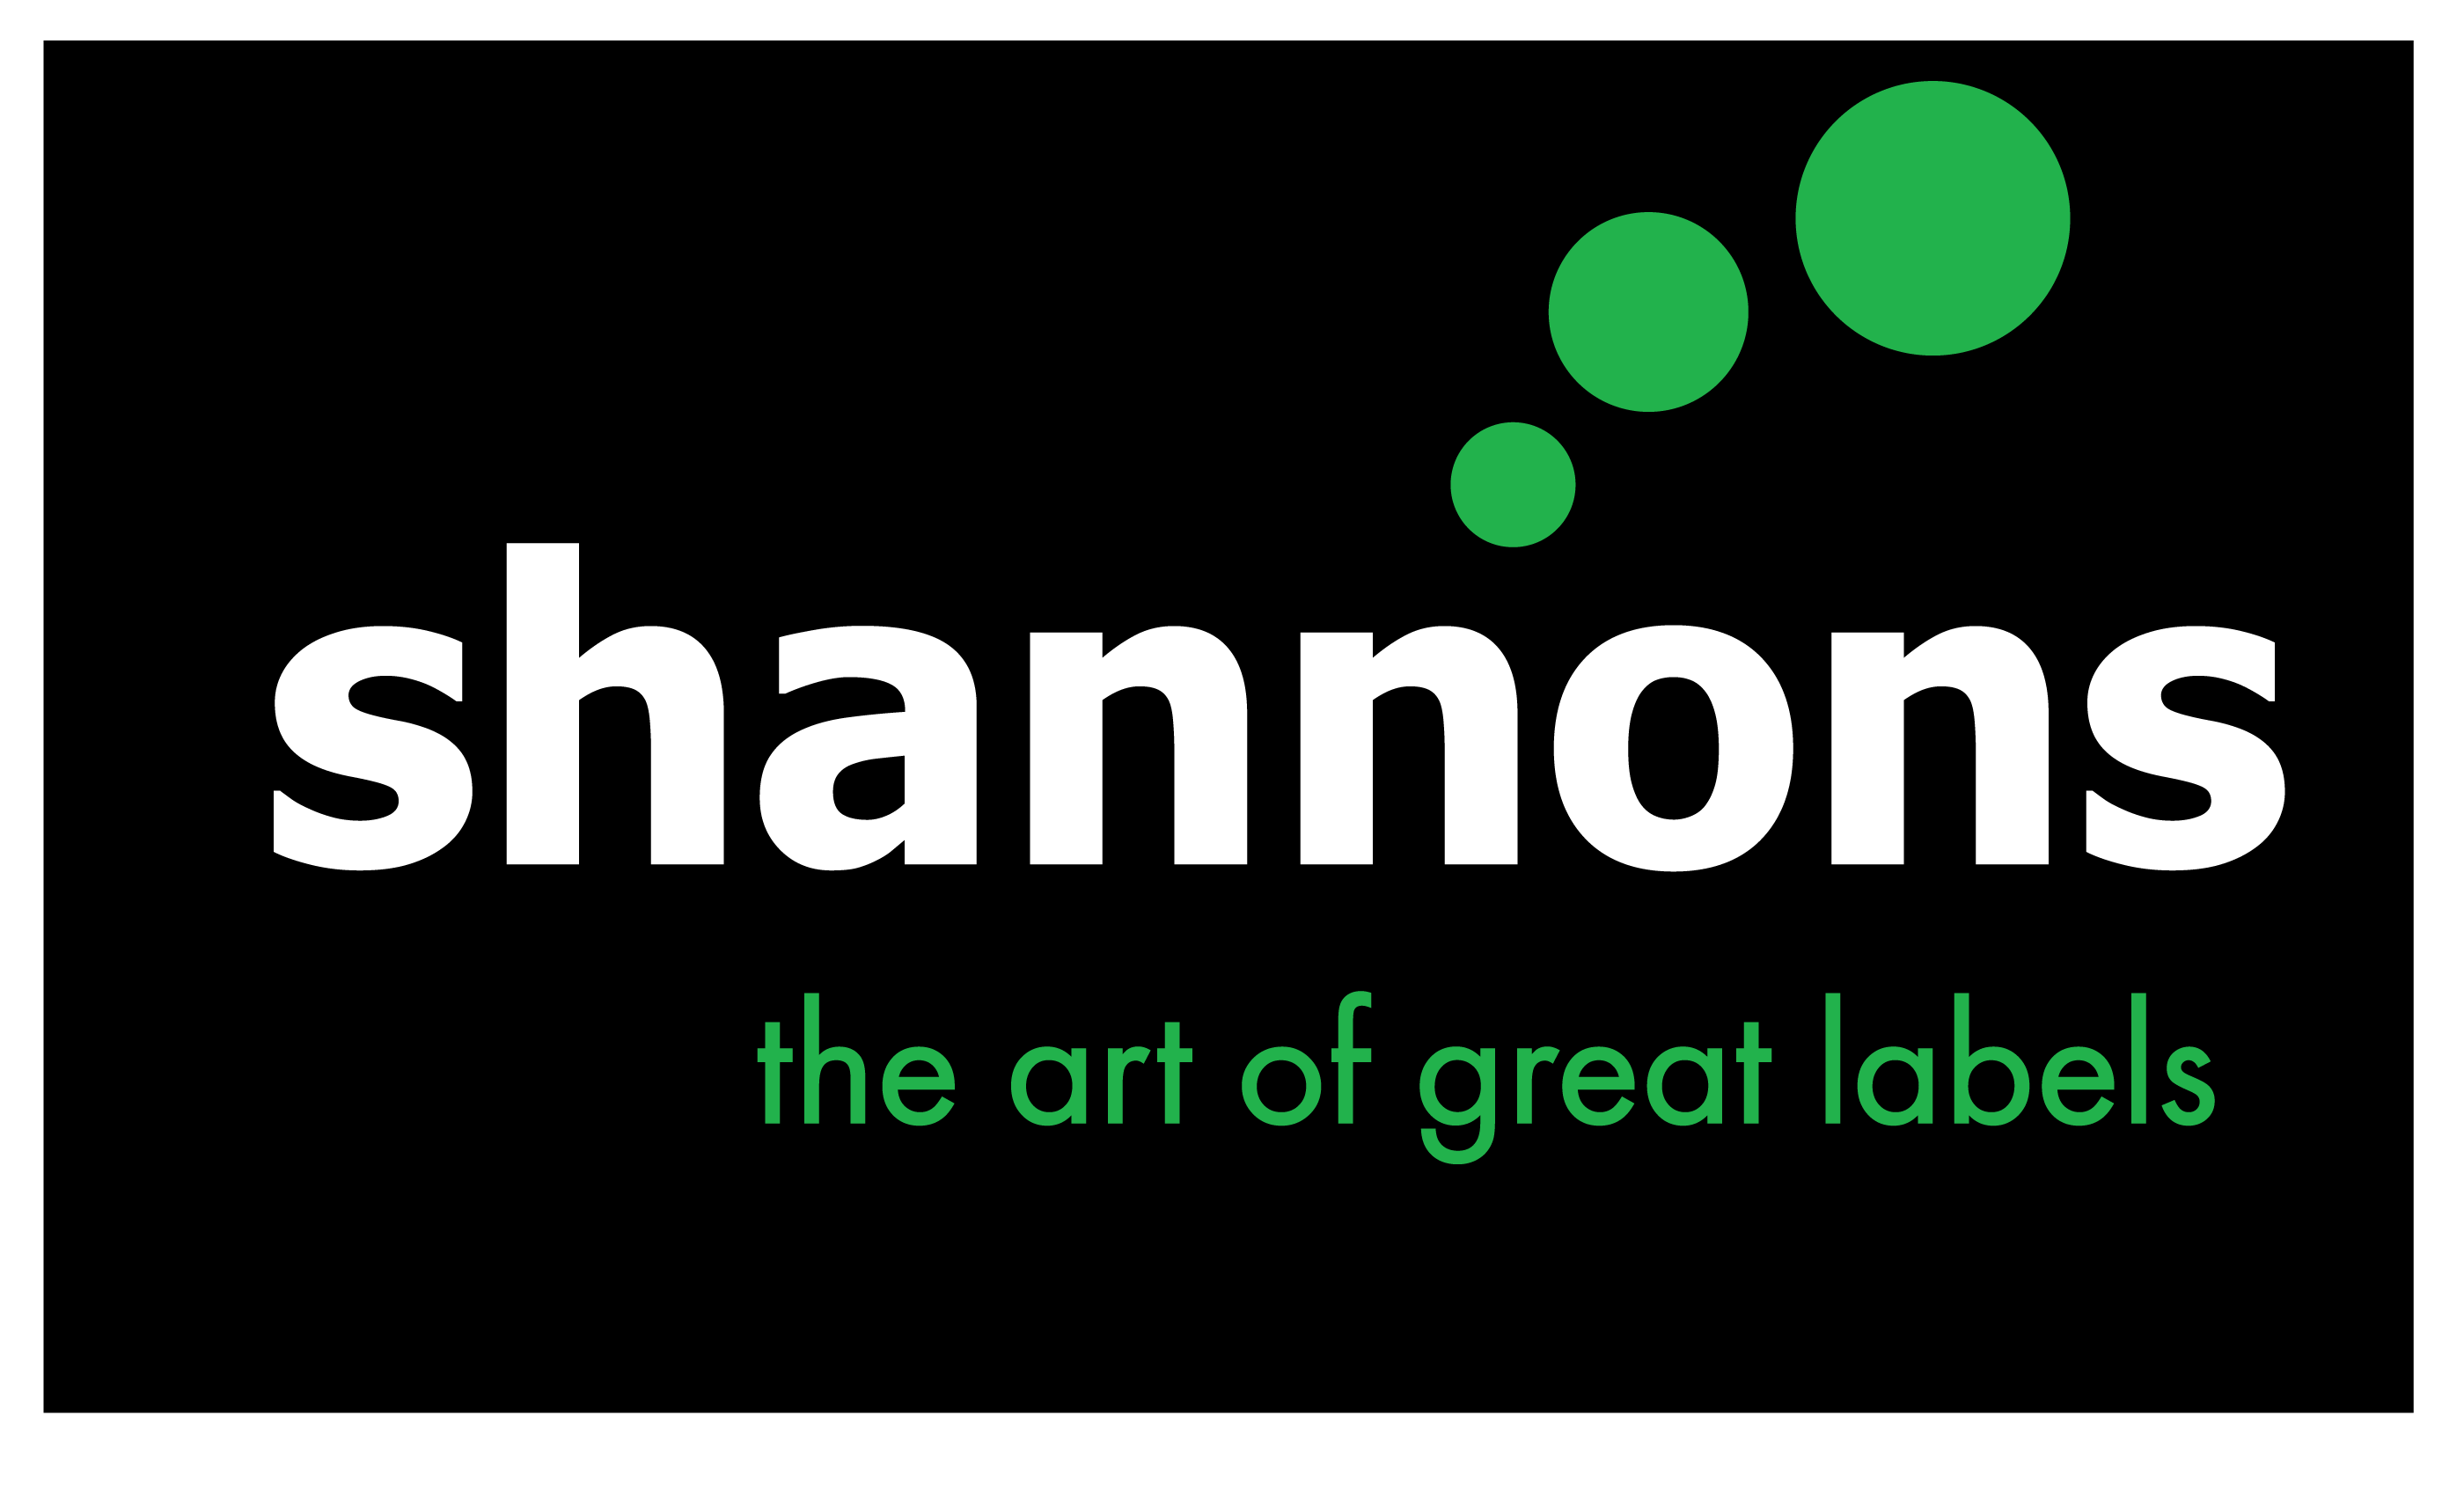 Shannons Labels Logo